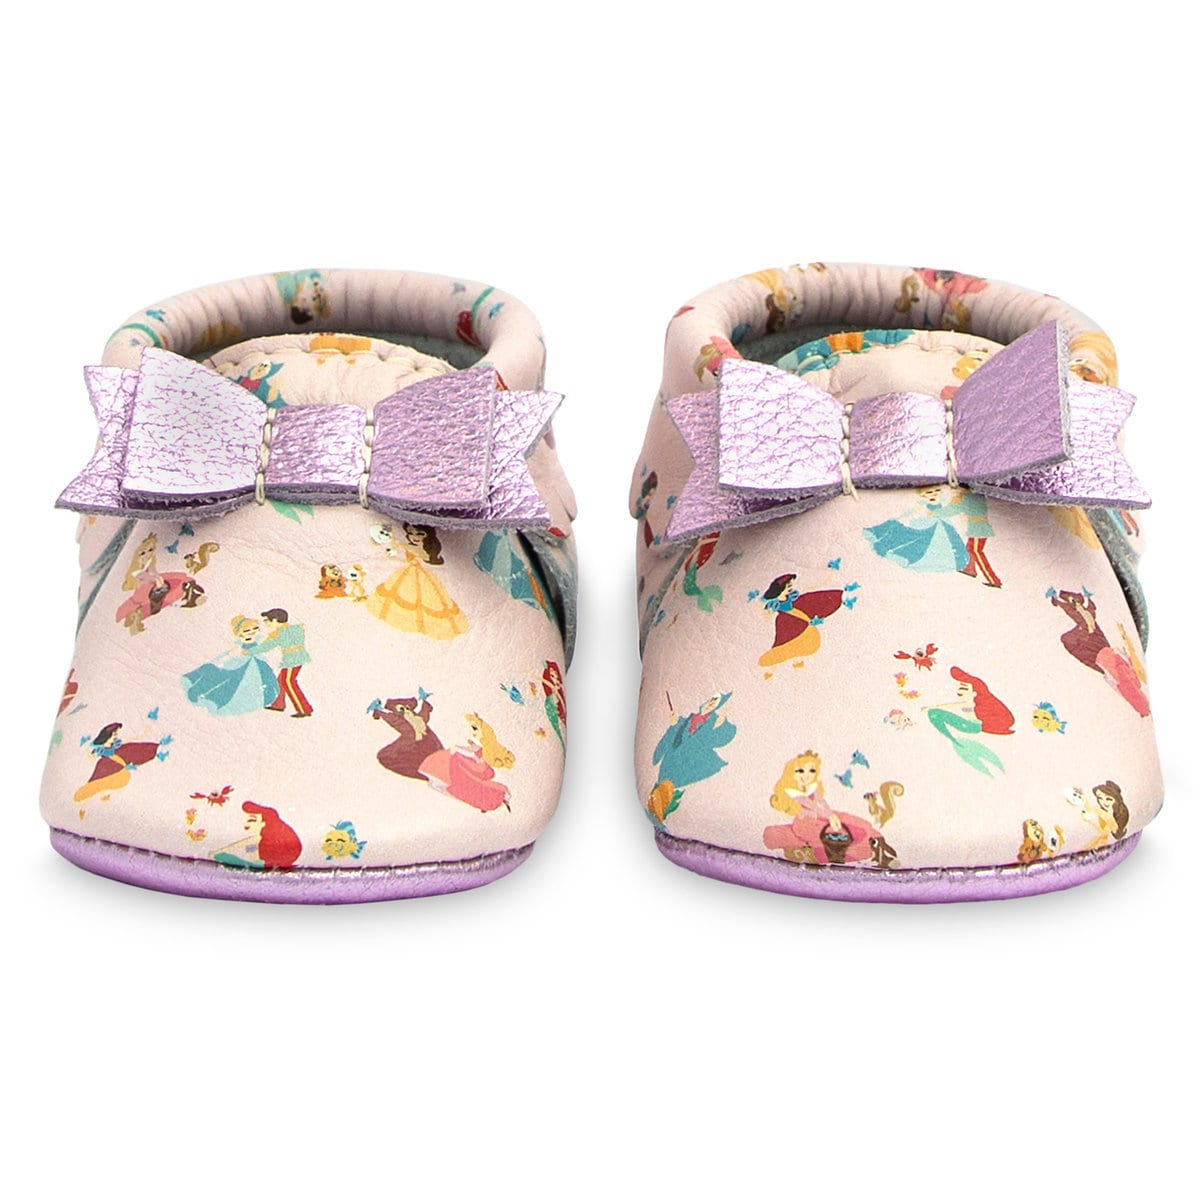 5cda4b427bc Product Image of Disney Princess Moccasins for Baby by Freshly Picked   1